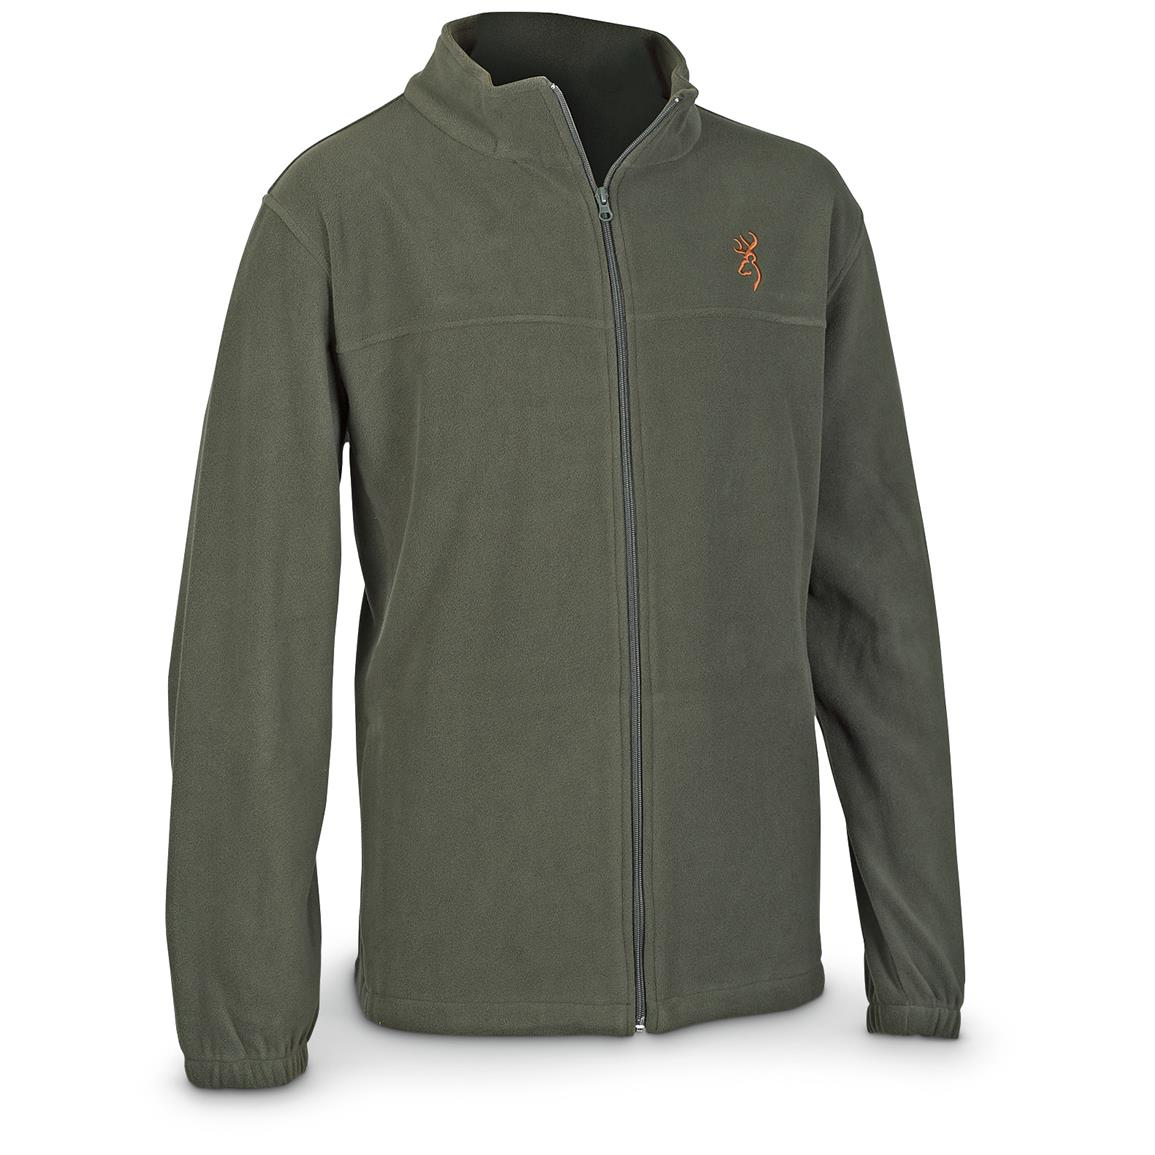 Browning Men's Fleece Full Zip Jacket, Forest Night